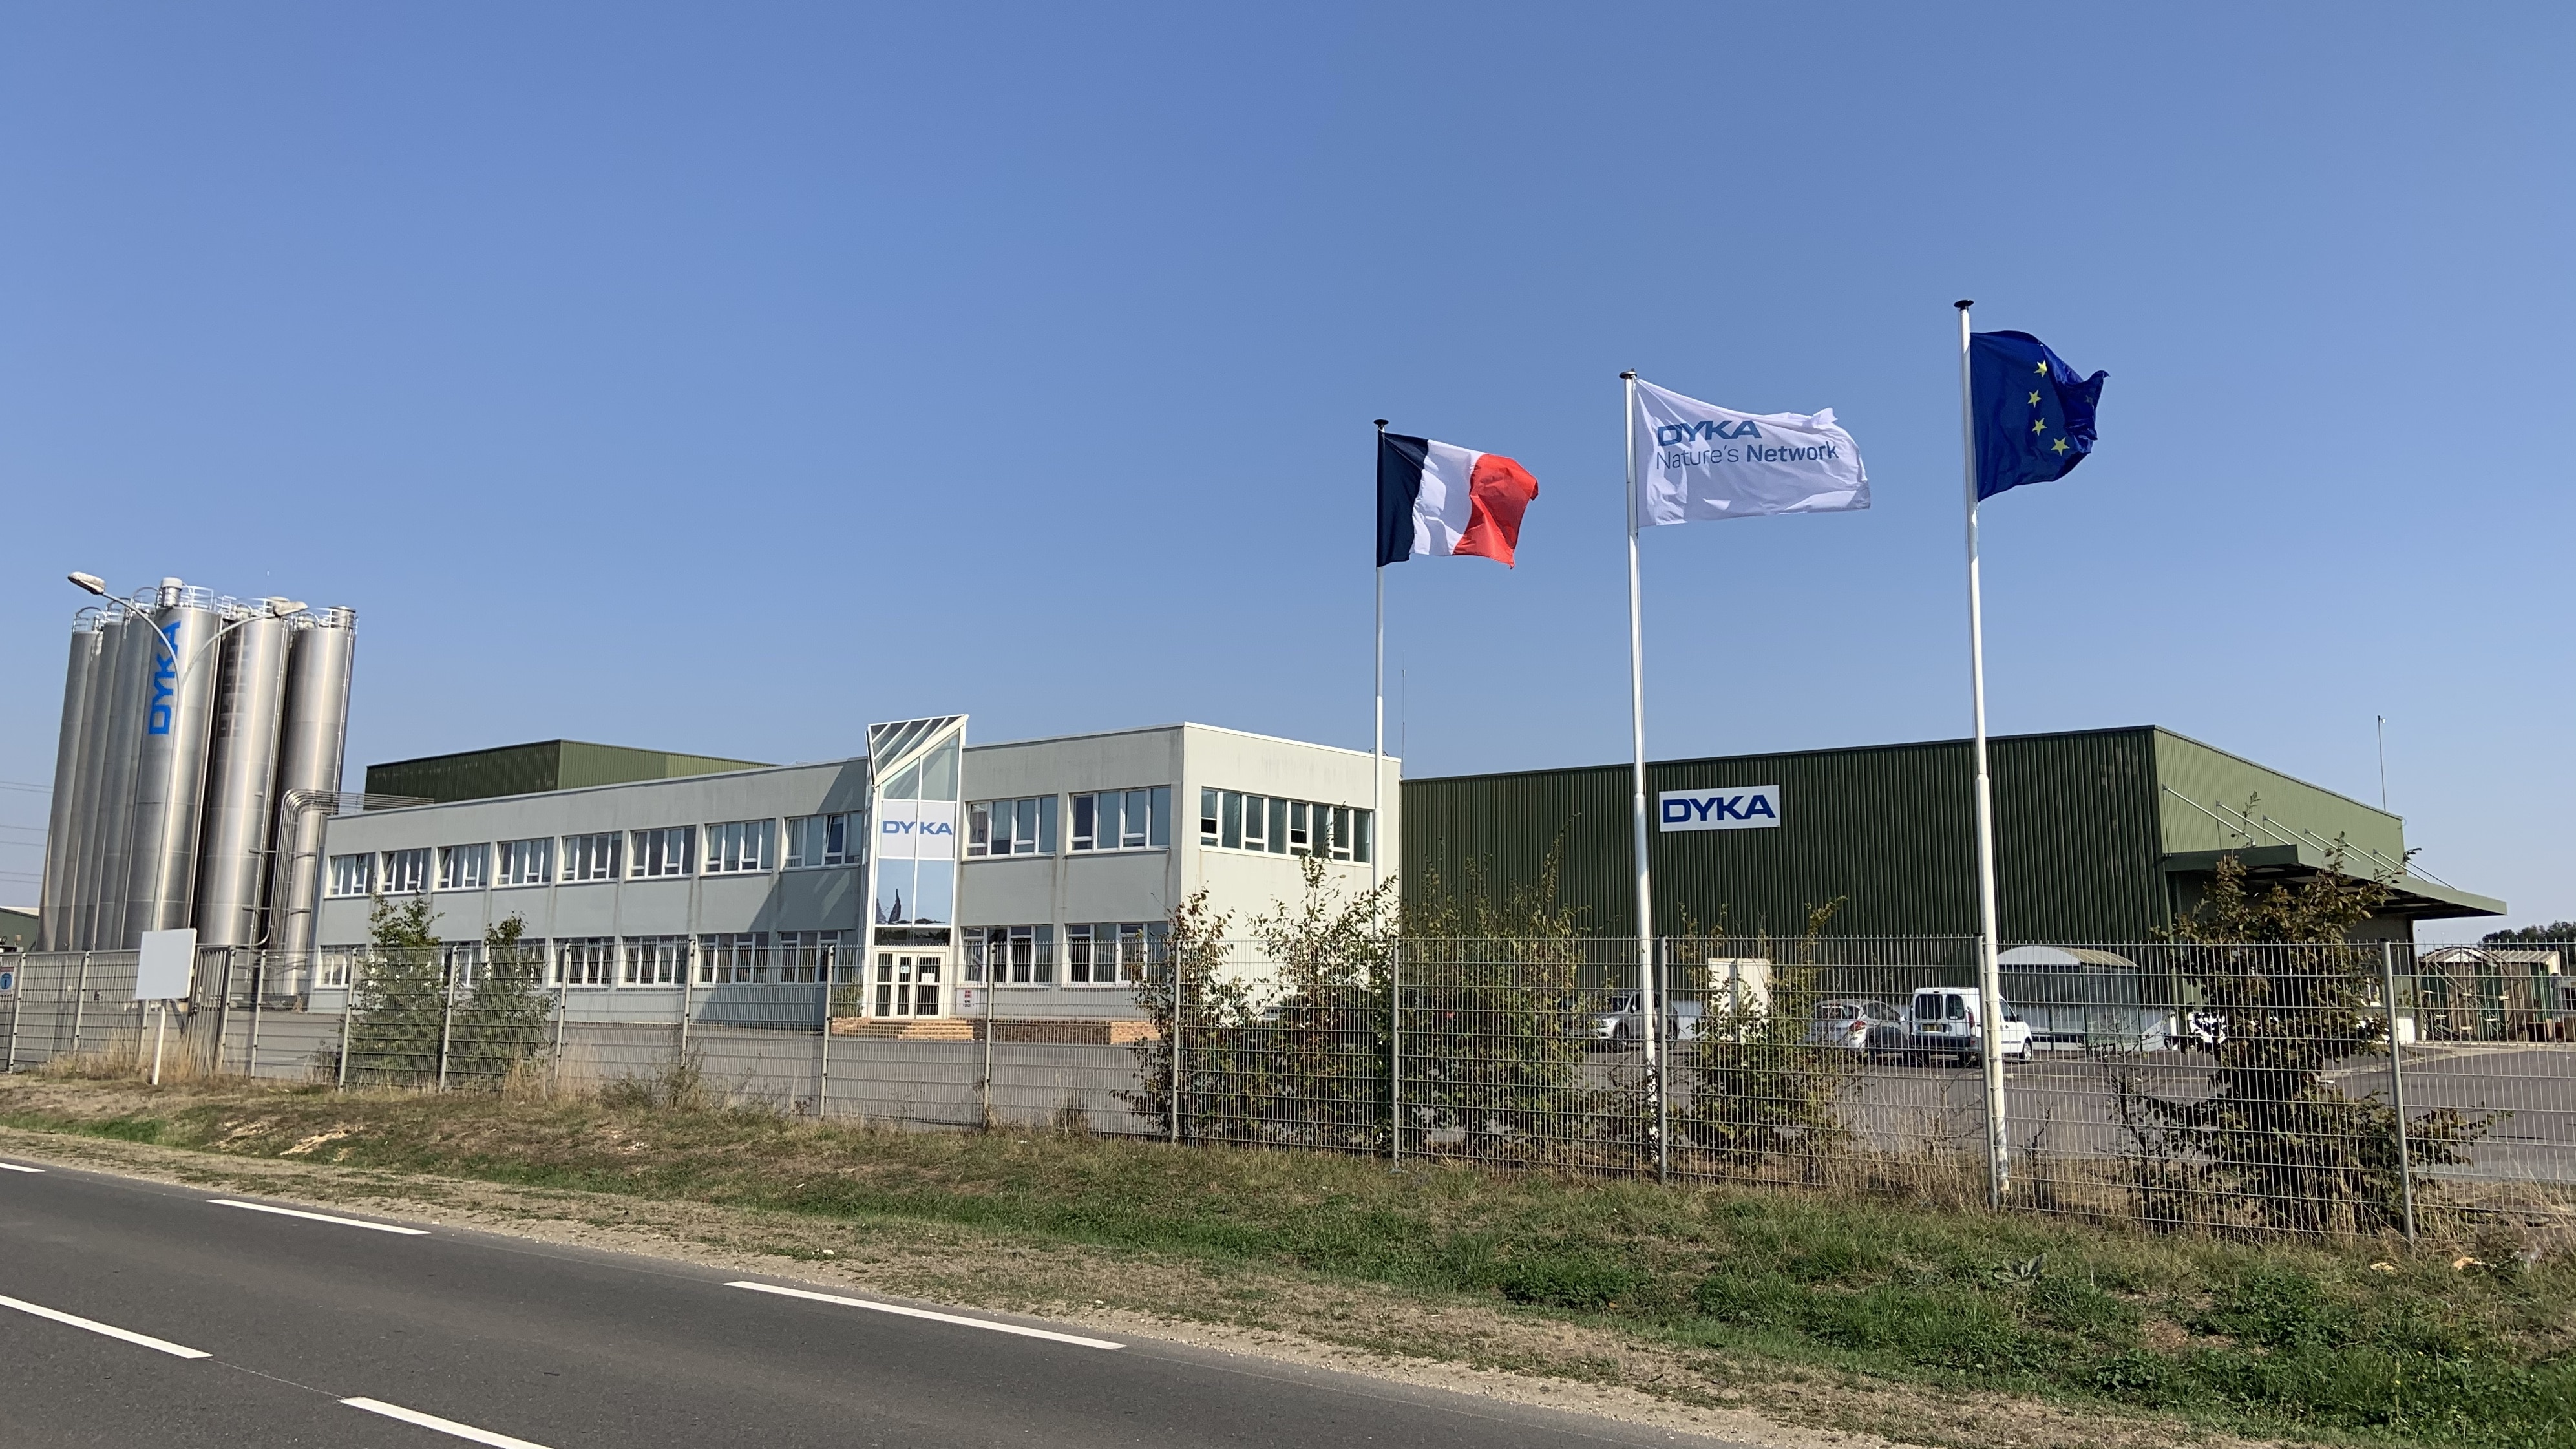 DYKA France Bourge